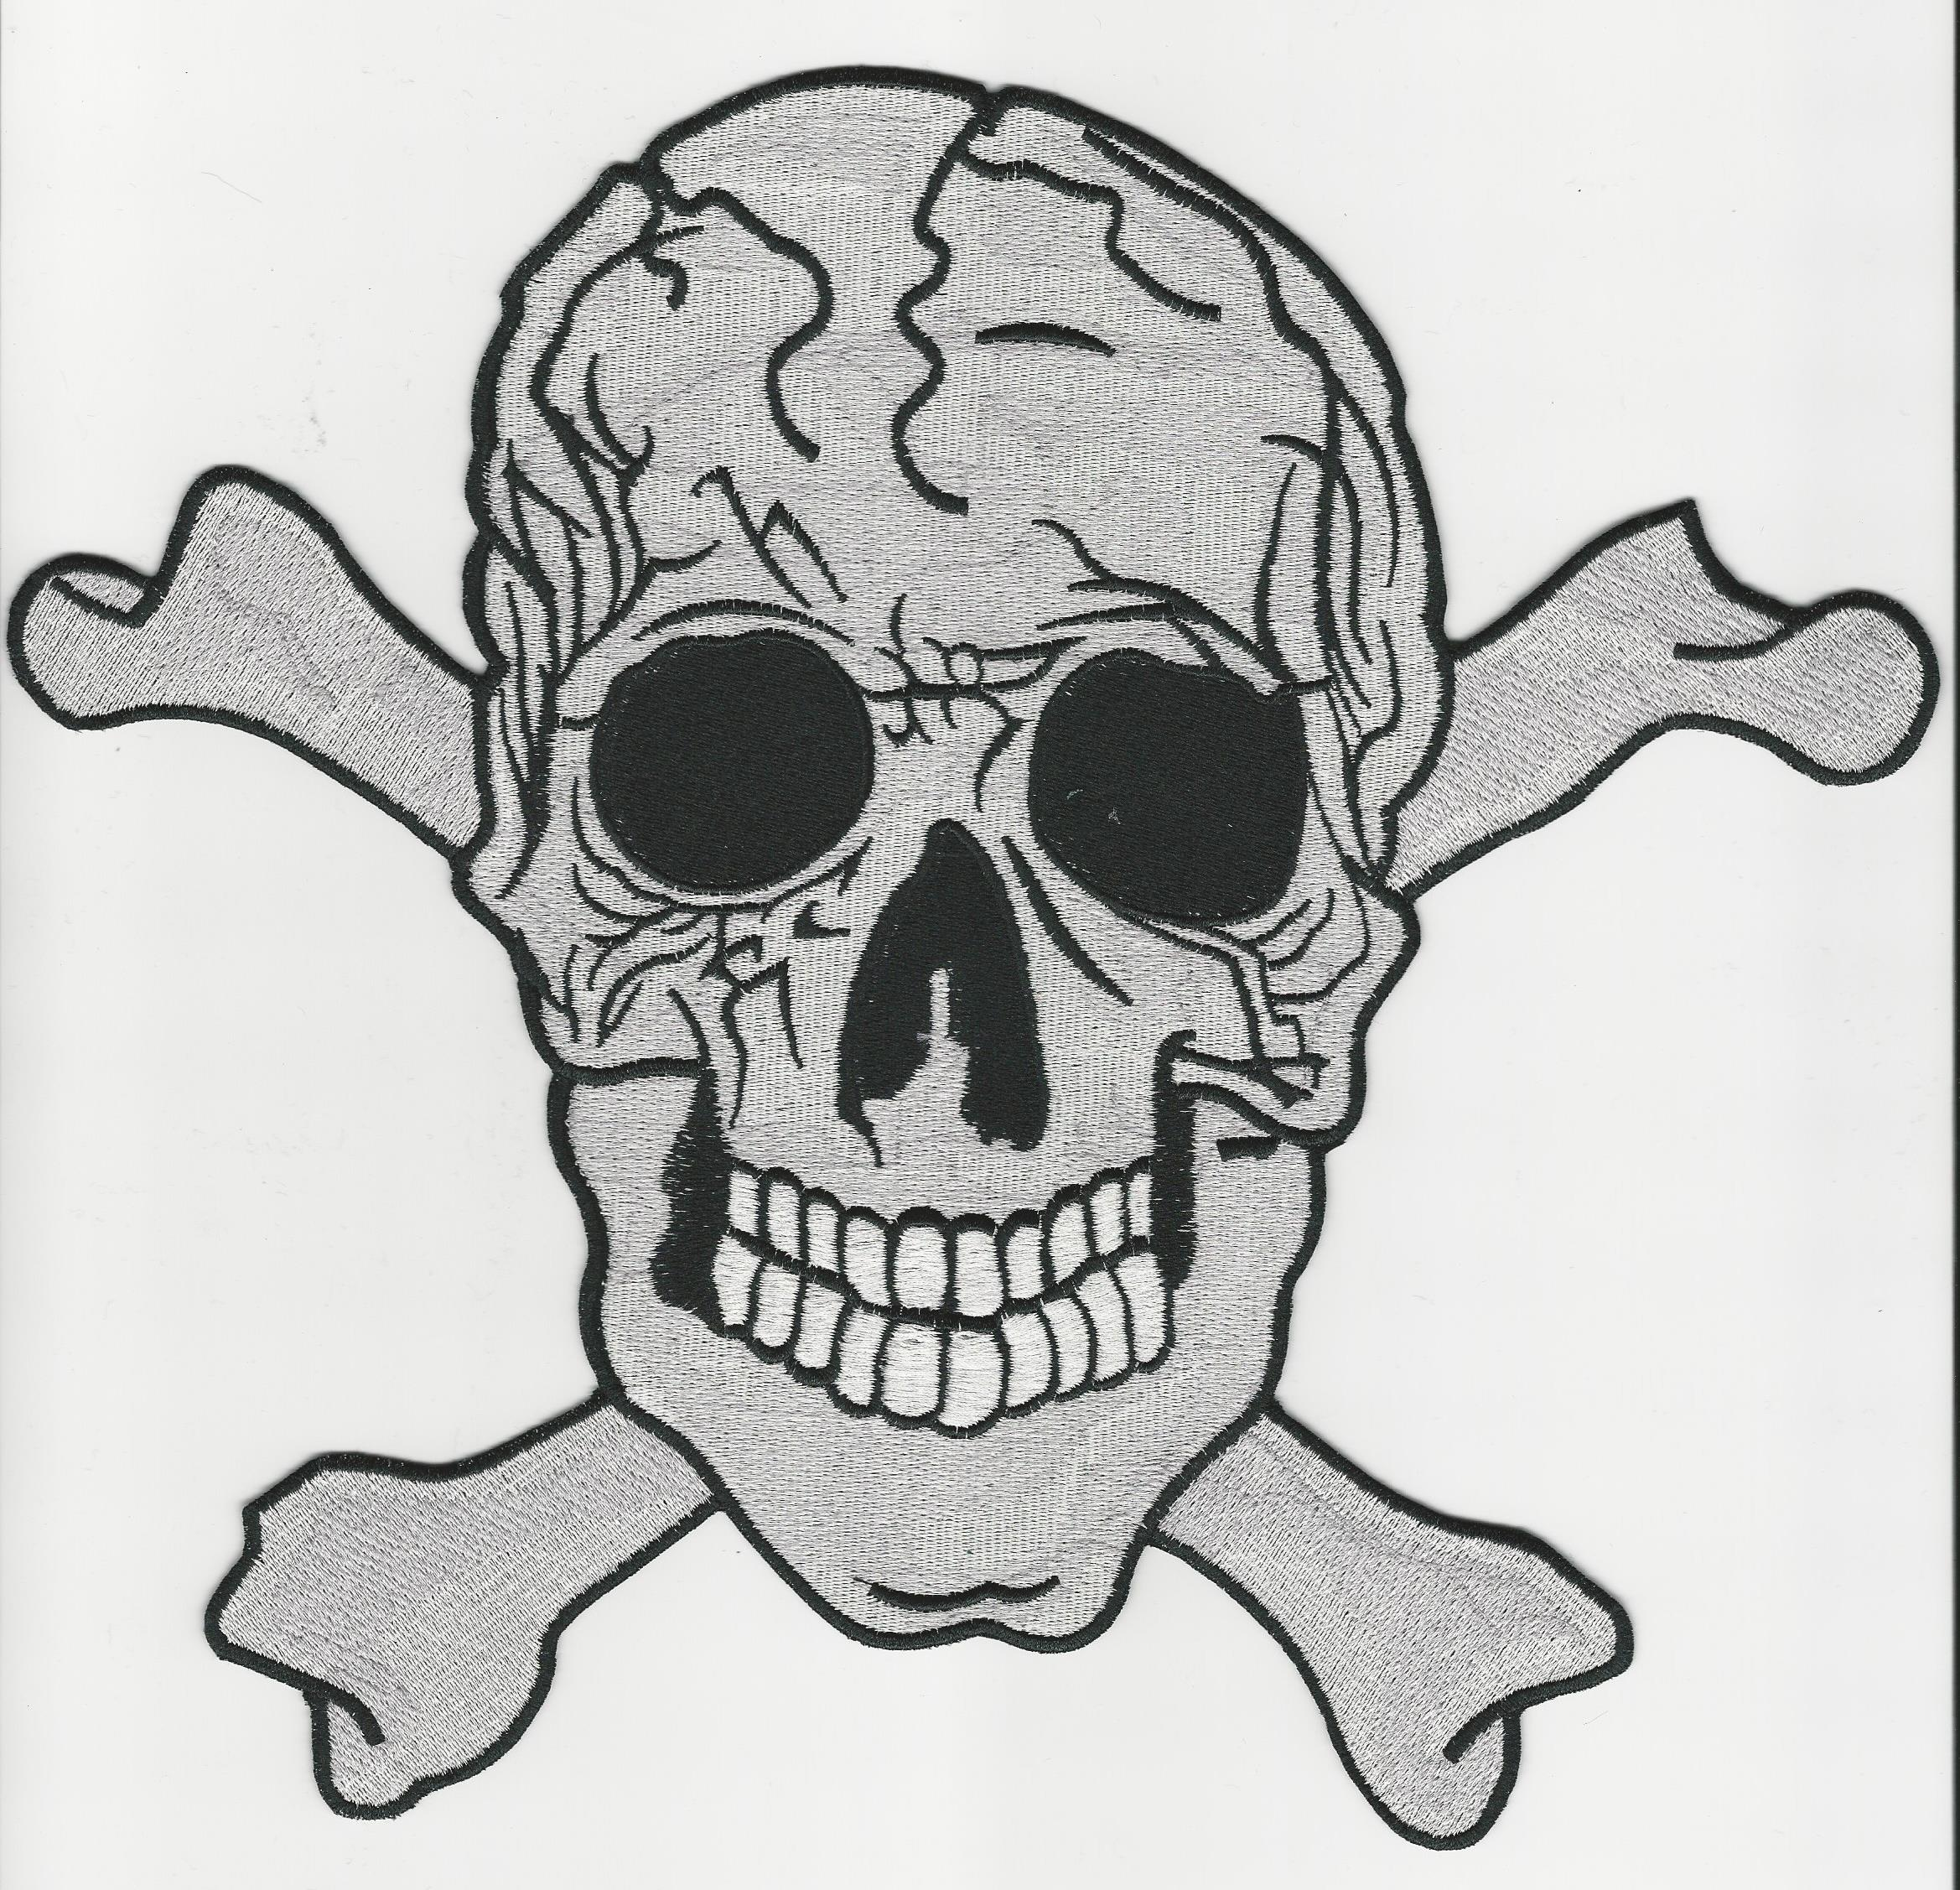 Skull and Cross Bones back patch